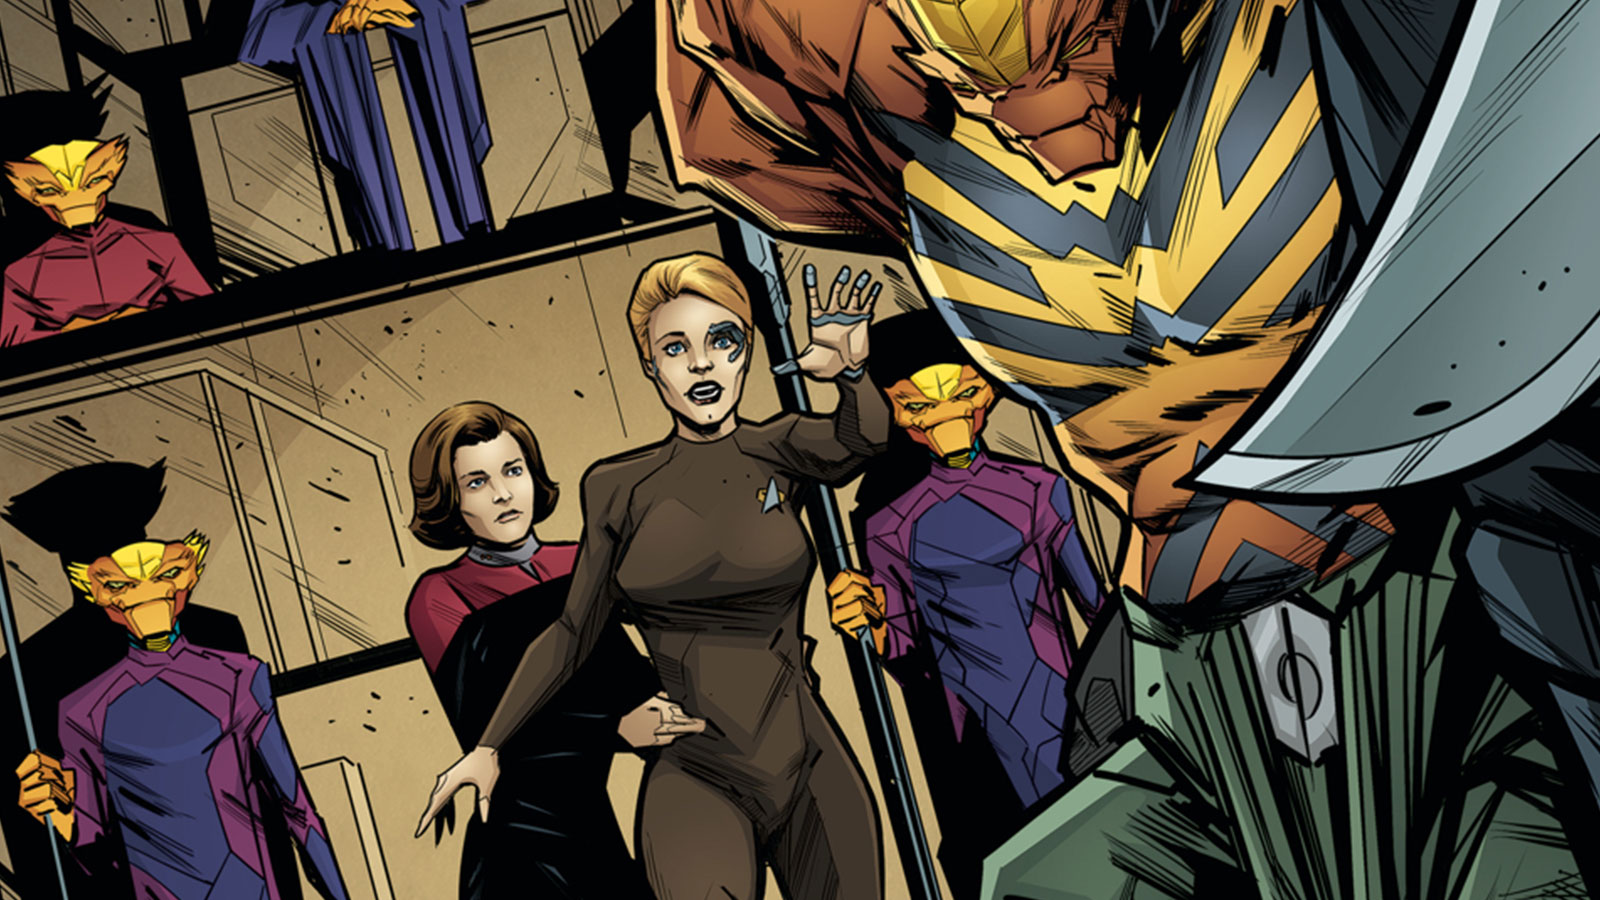 Seven's Reckoning Issue 4 Review: The Star Trek: Voyager Miniseries Culminates In Epic Fashion